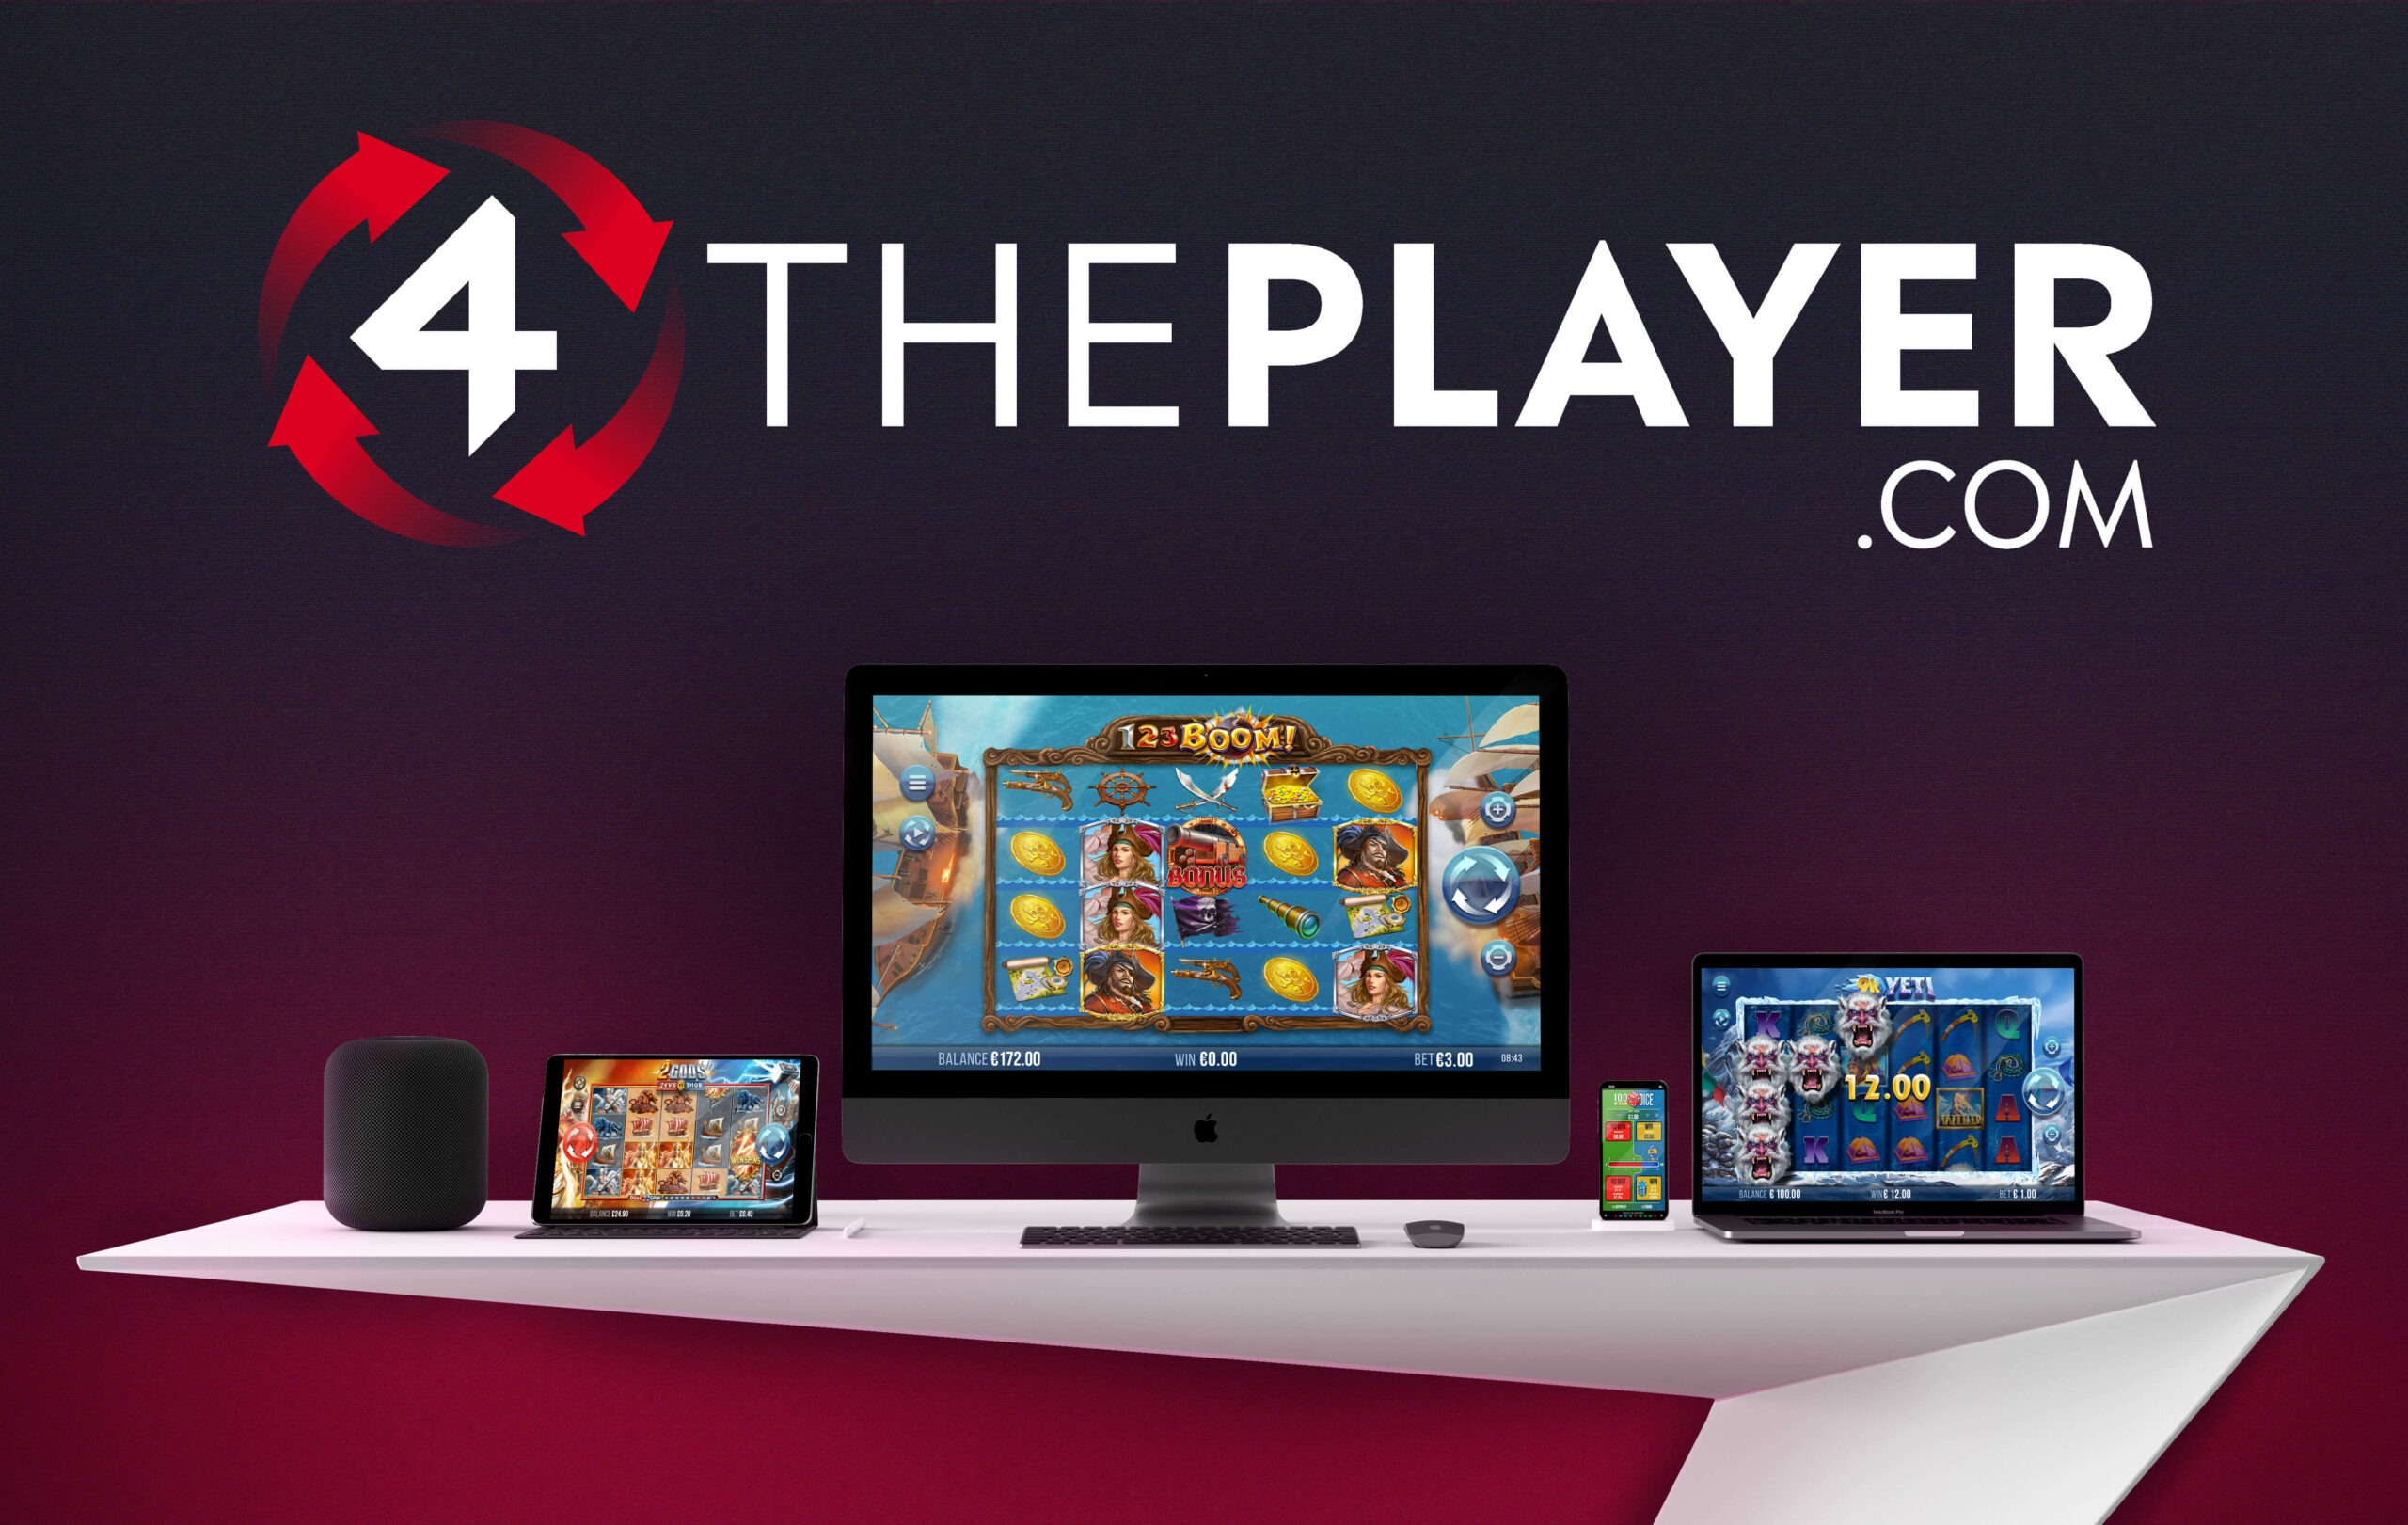 4ThePlayer Close Funding Look USA